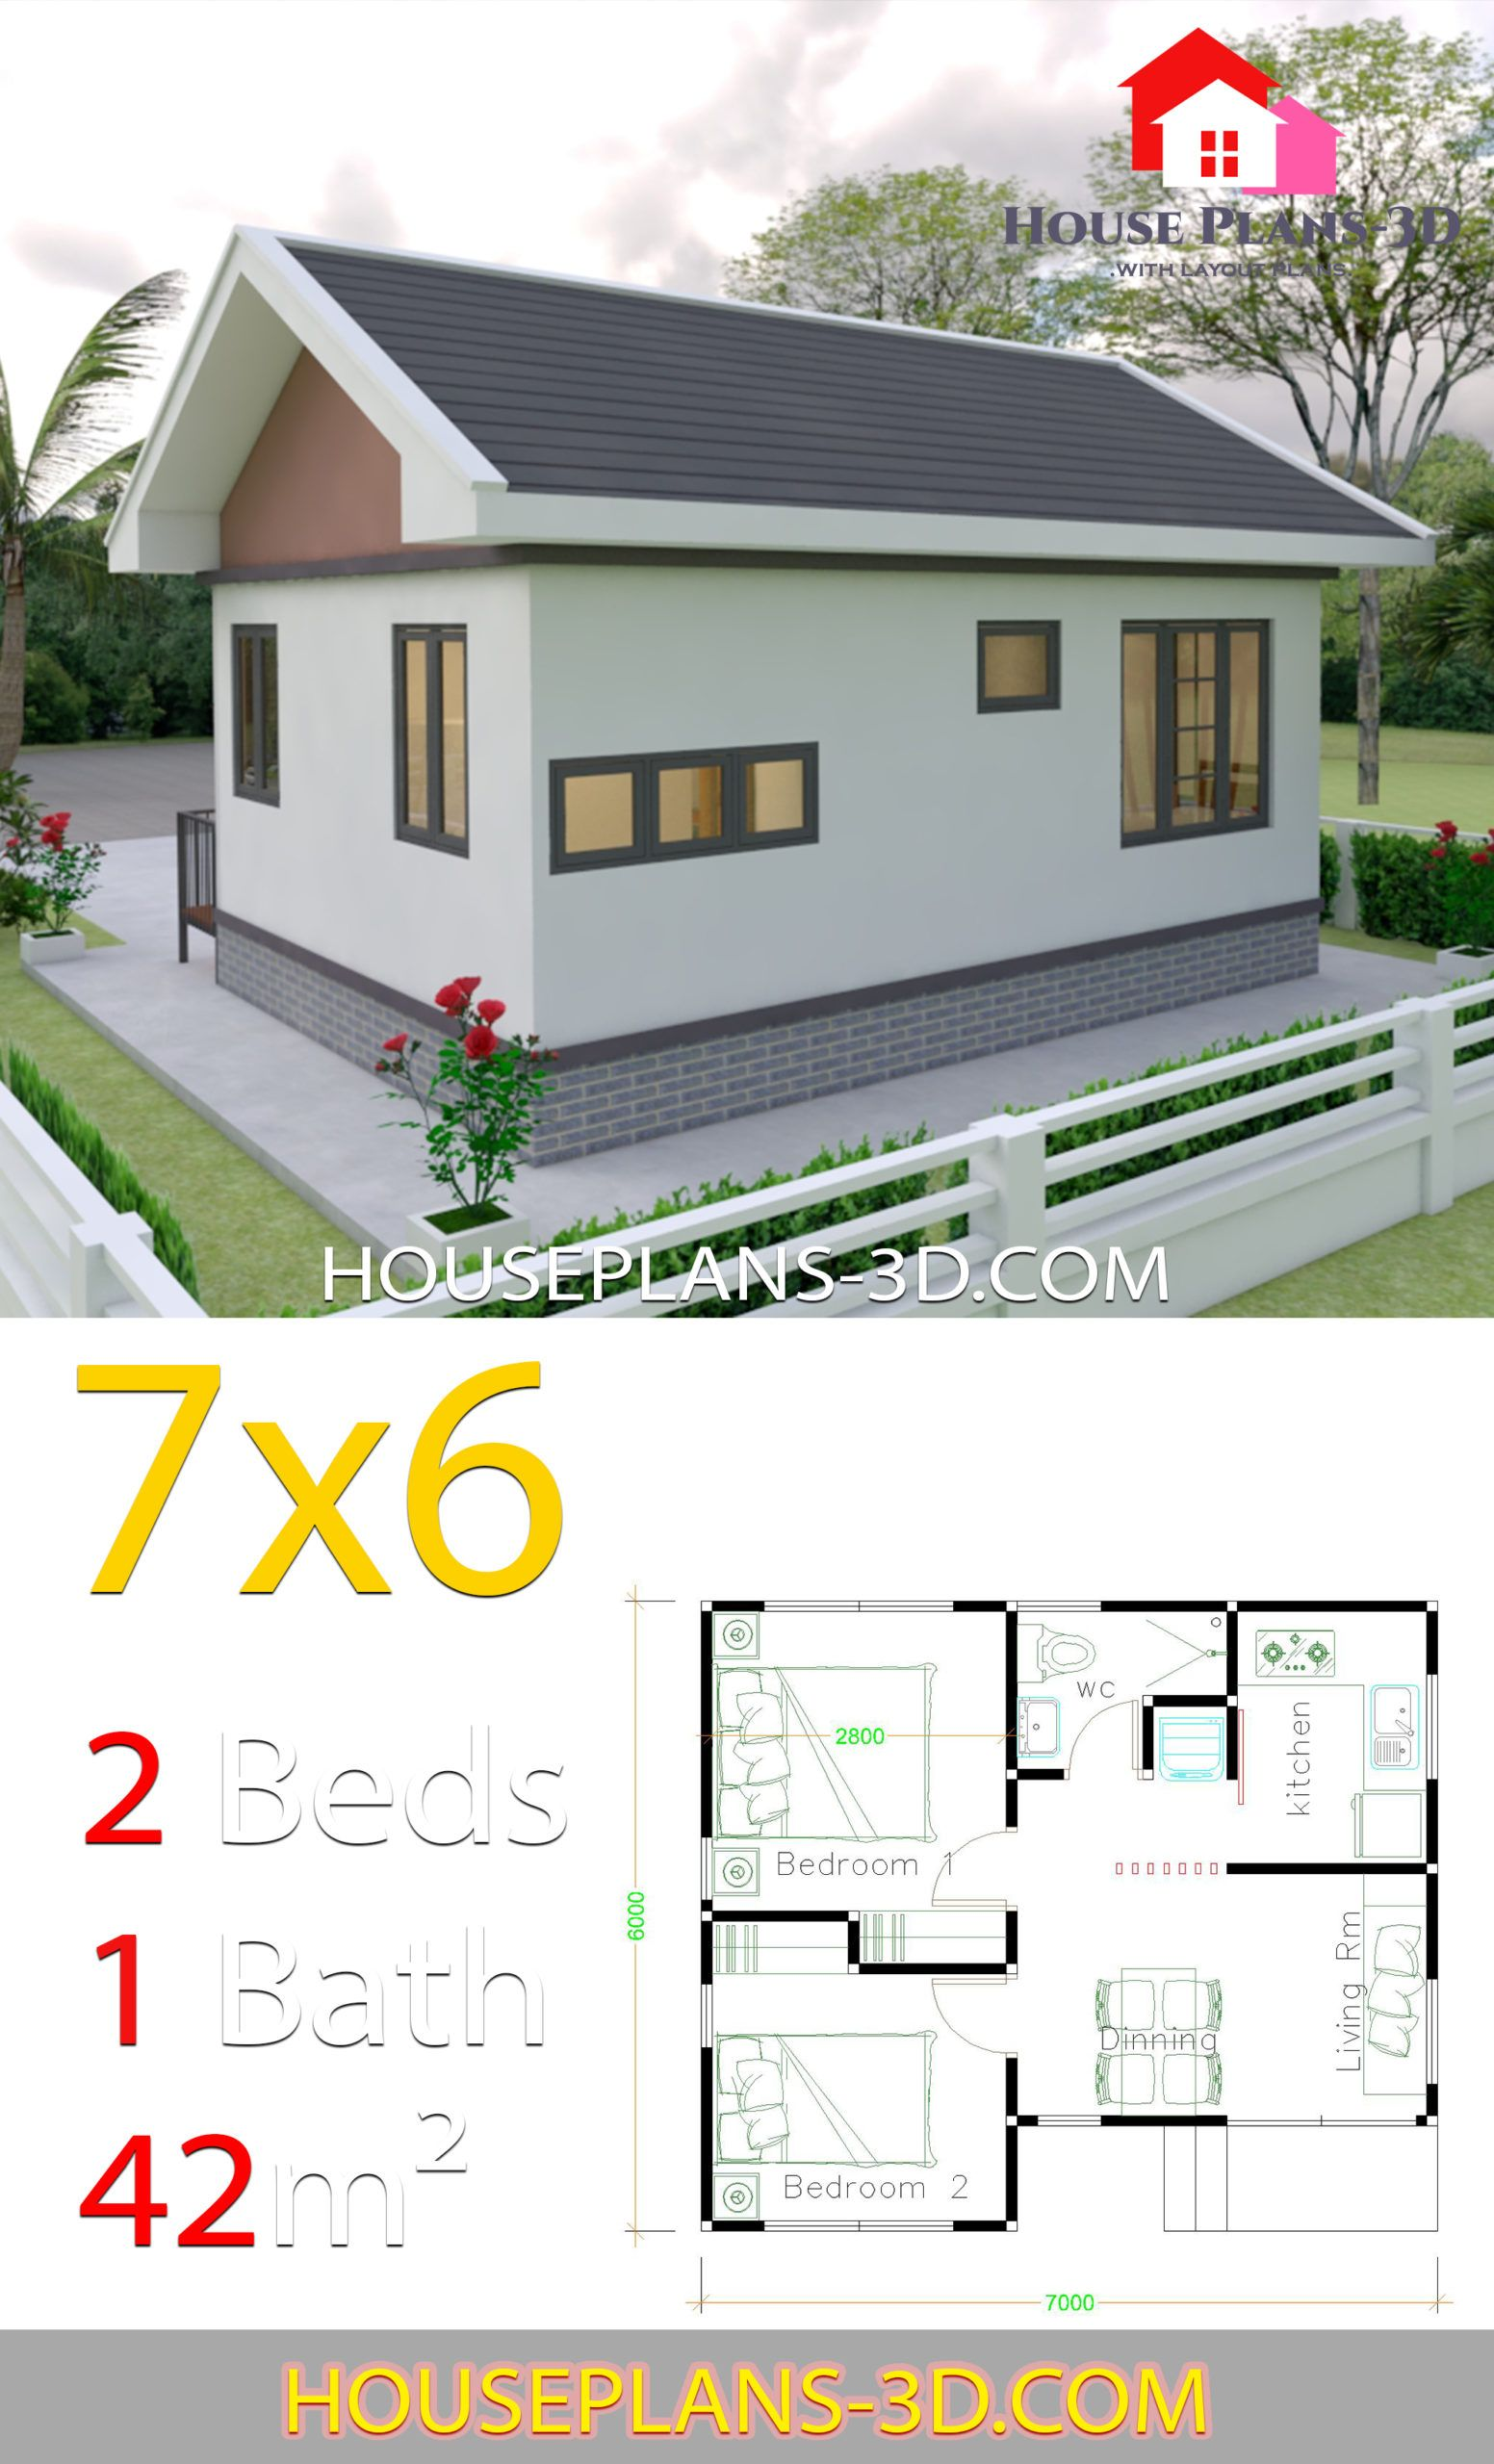 House Plans Design 7x6 With 2 Bedrooms Gable Roof House Plans 3d Gable Roof House House Plans House Roof